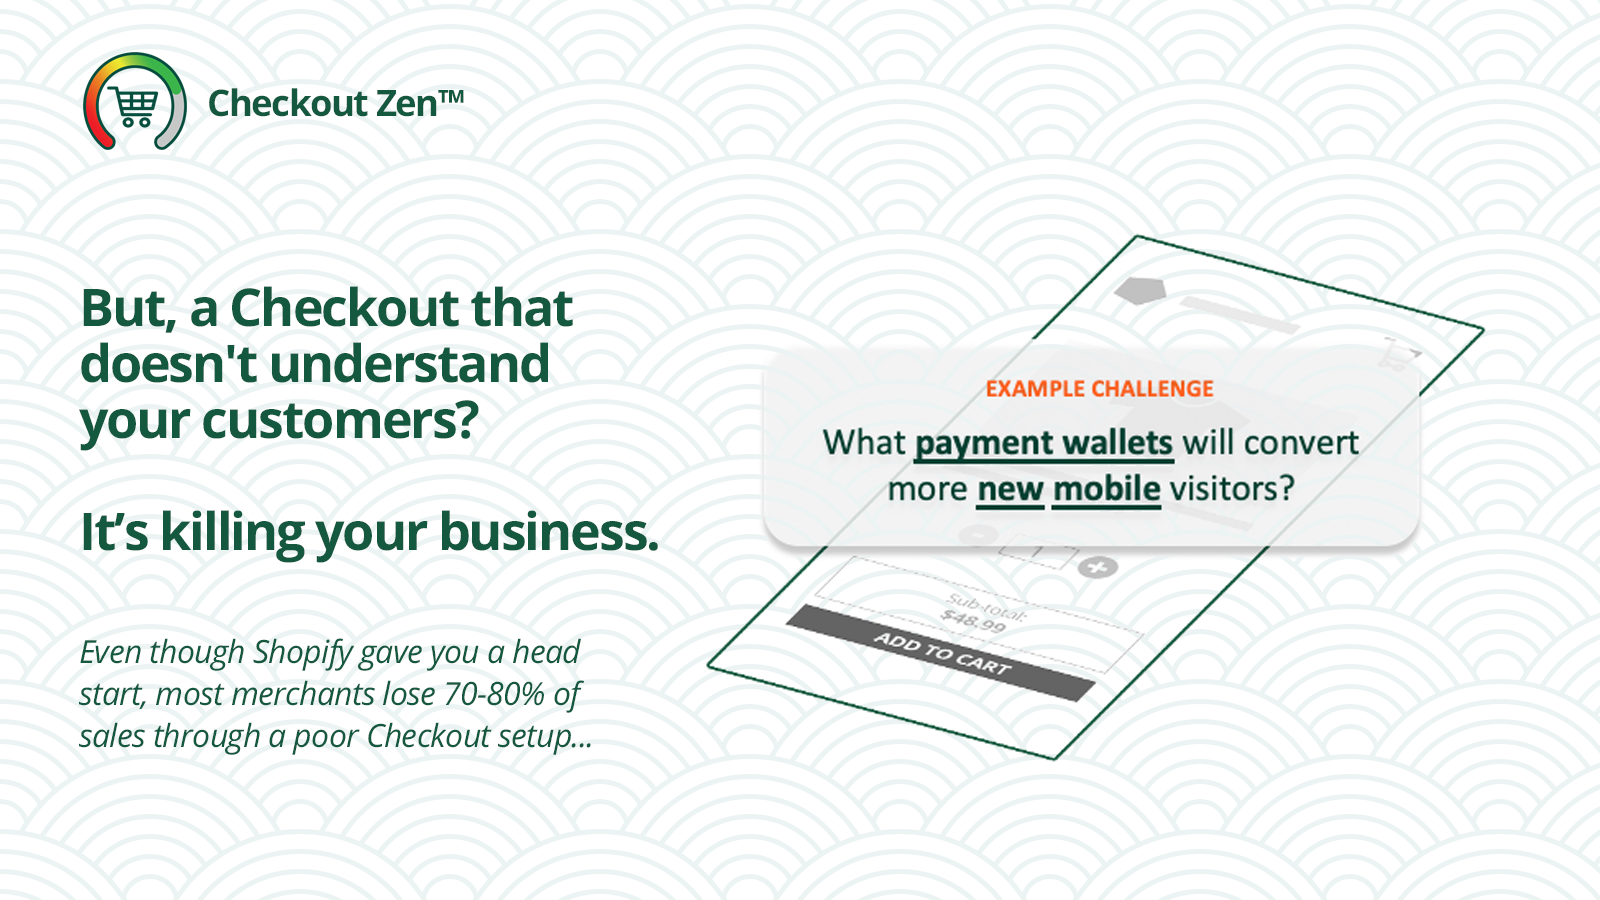 Example of Checkout Zen, HiConvesrion's Shopify app for eCommerce brands